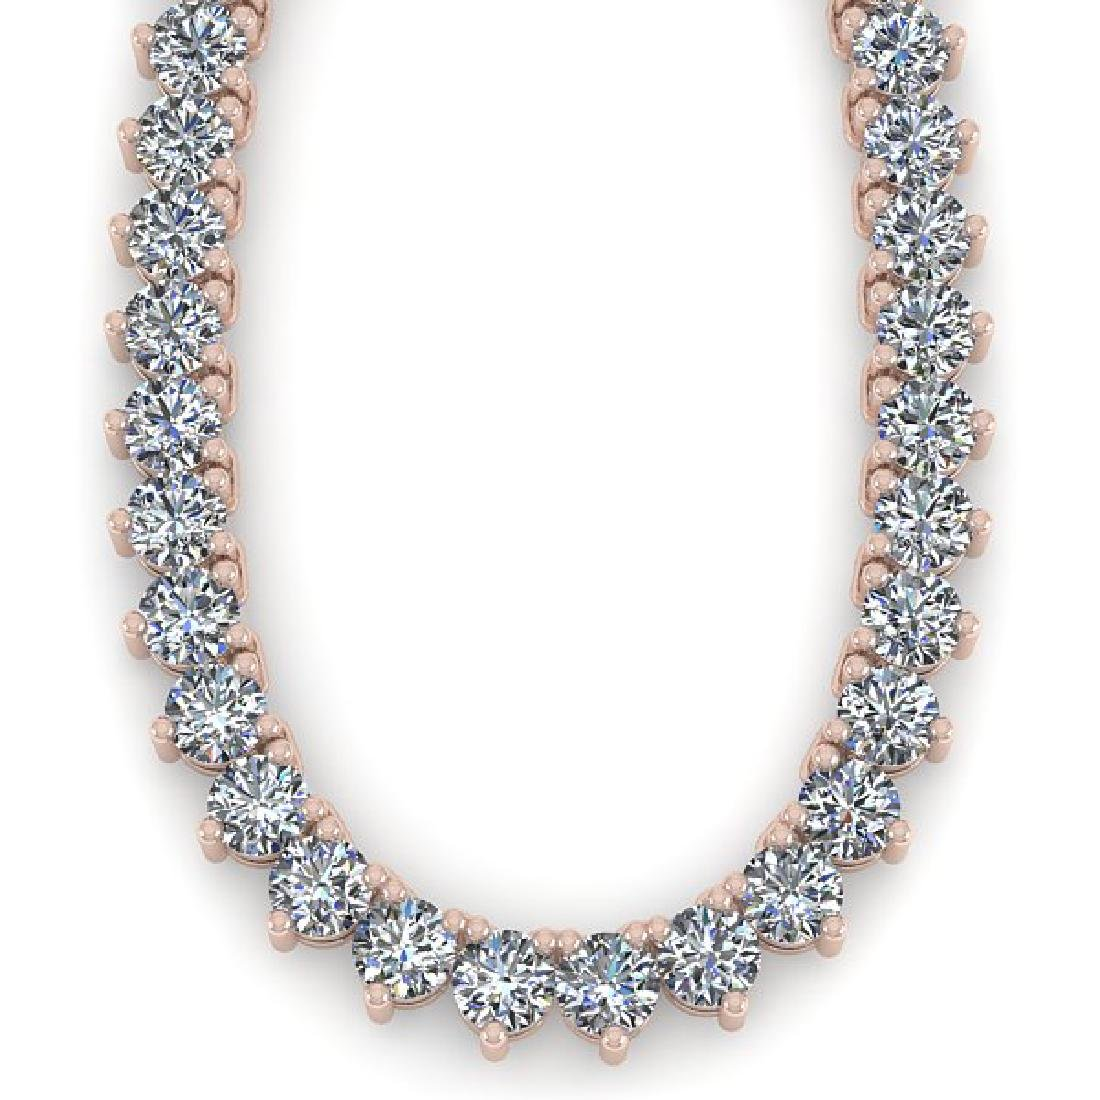 53 CTW Solitaire SI Diamond Necklace 18K Rose Gold - 2